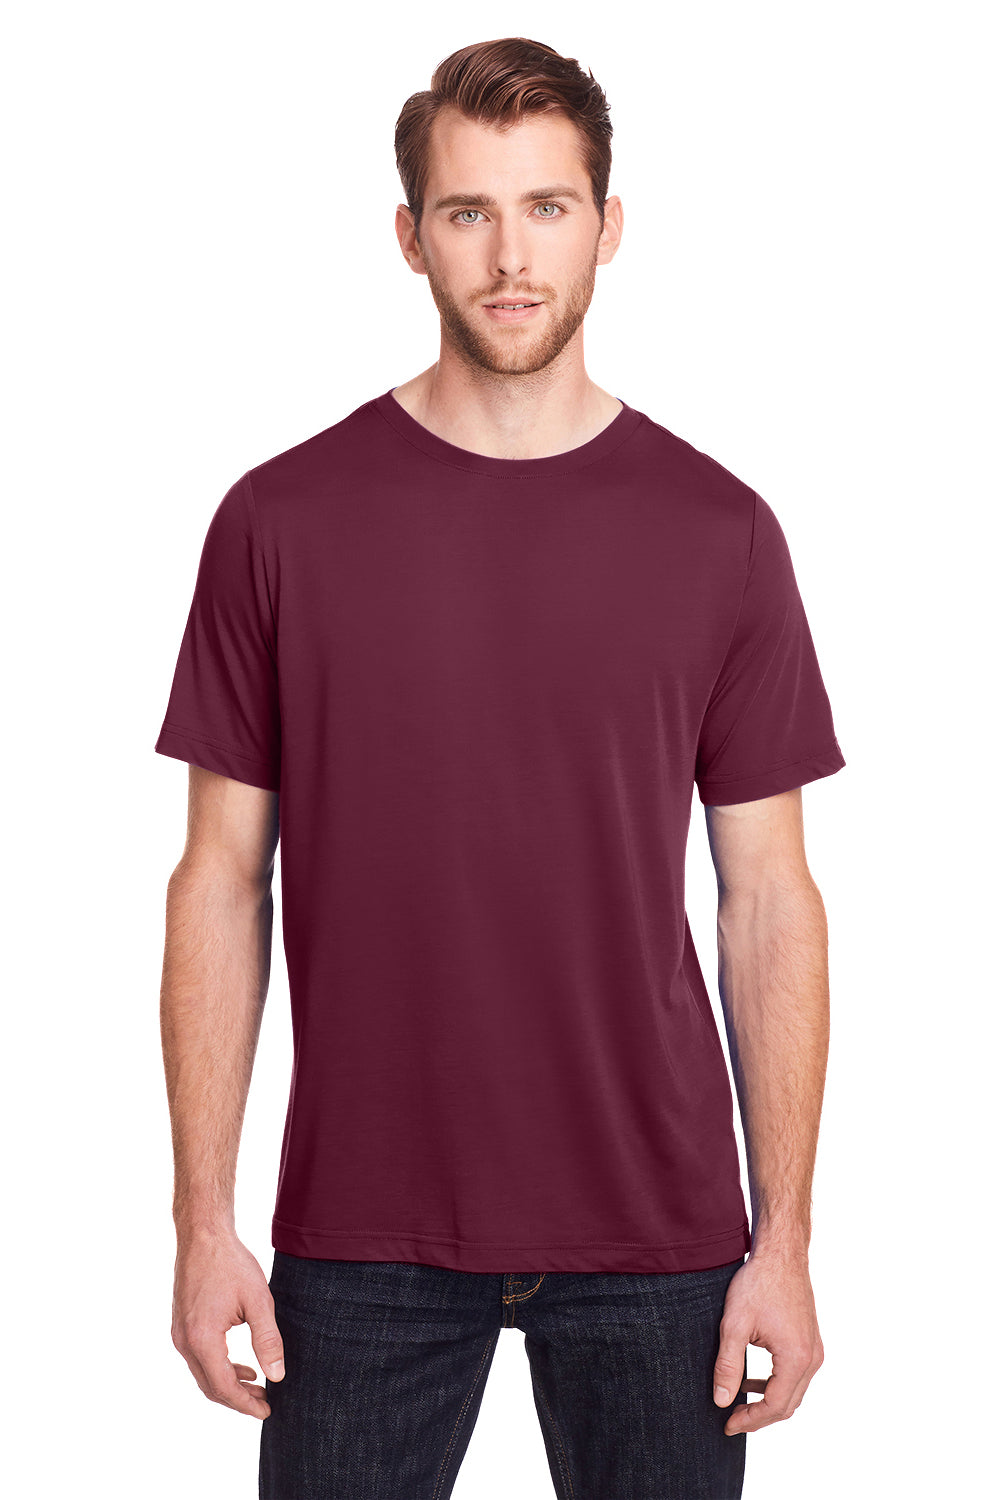 Core 365 CE111 Mens Fusion ChromaSoft Performance Moisture Wicking Short Sleeve Crewneck T-Shirt Burgundy Front